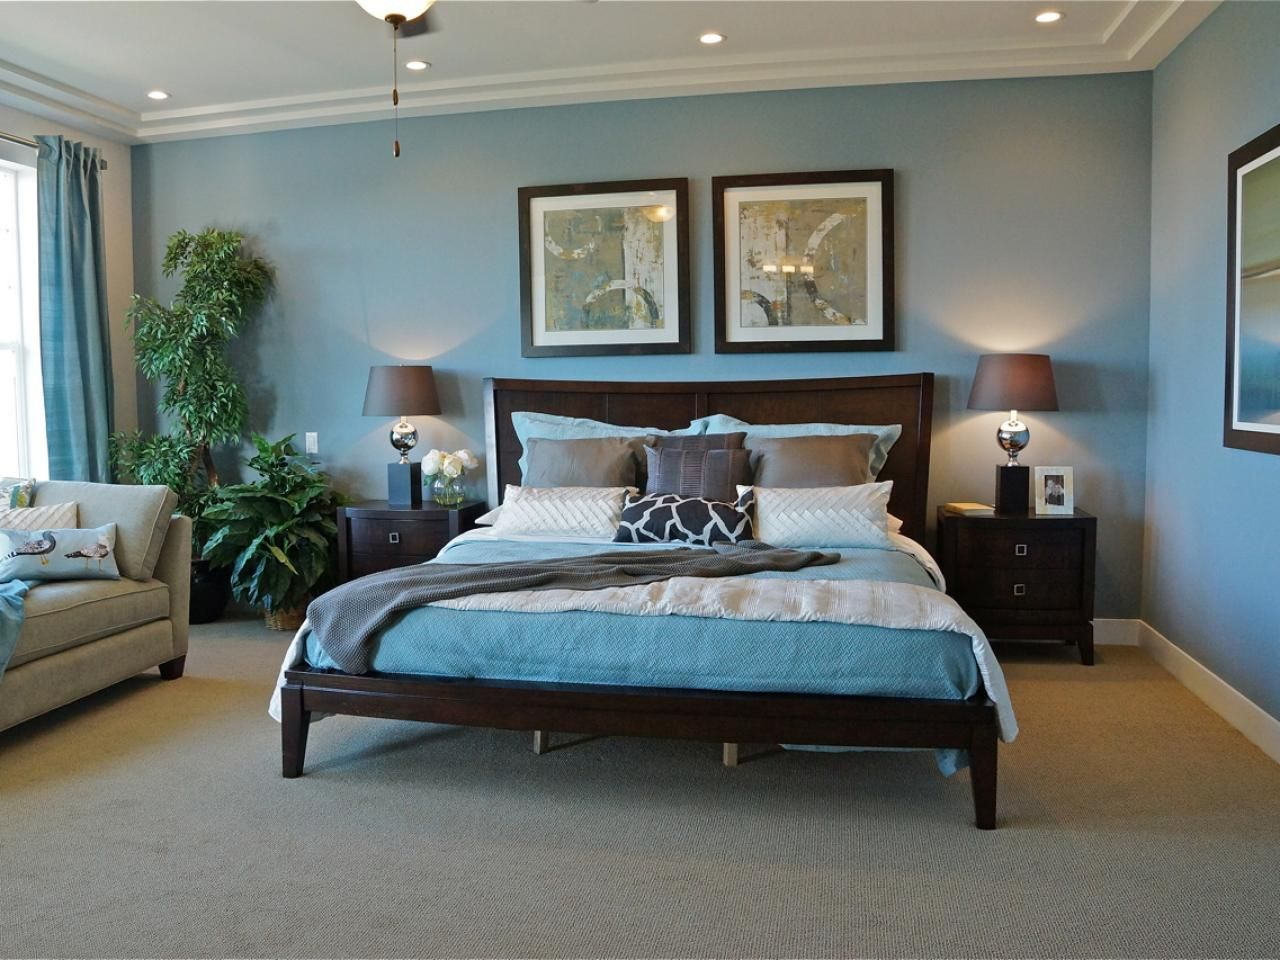 Light Blue Bedrooms Ideas Soothing And Stately This Traditional Bedroom Pairs Dark